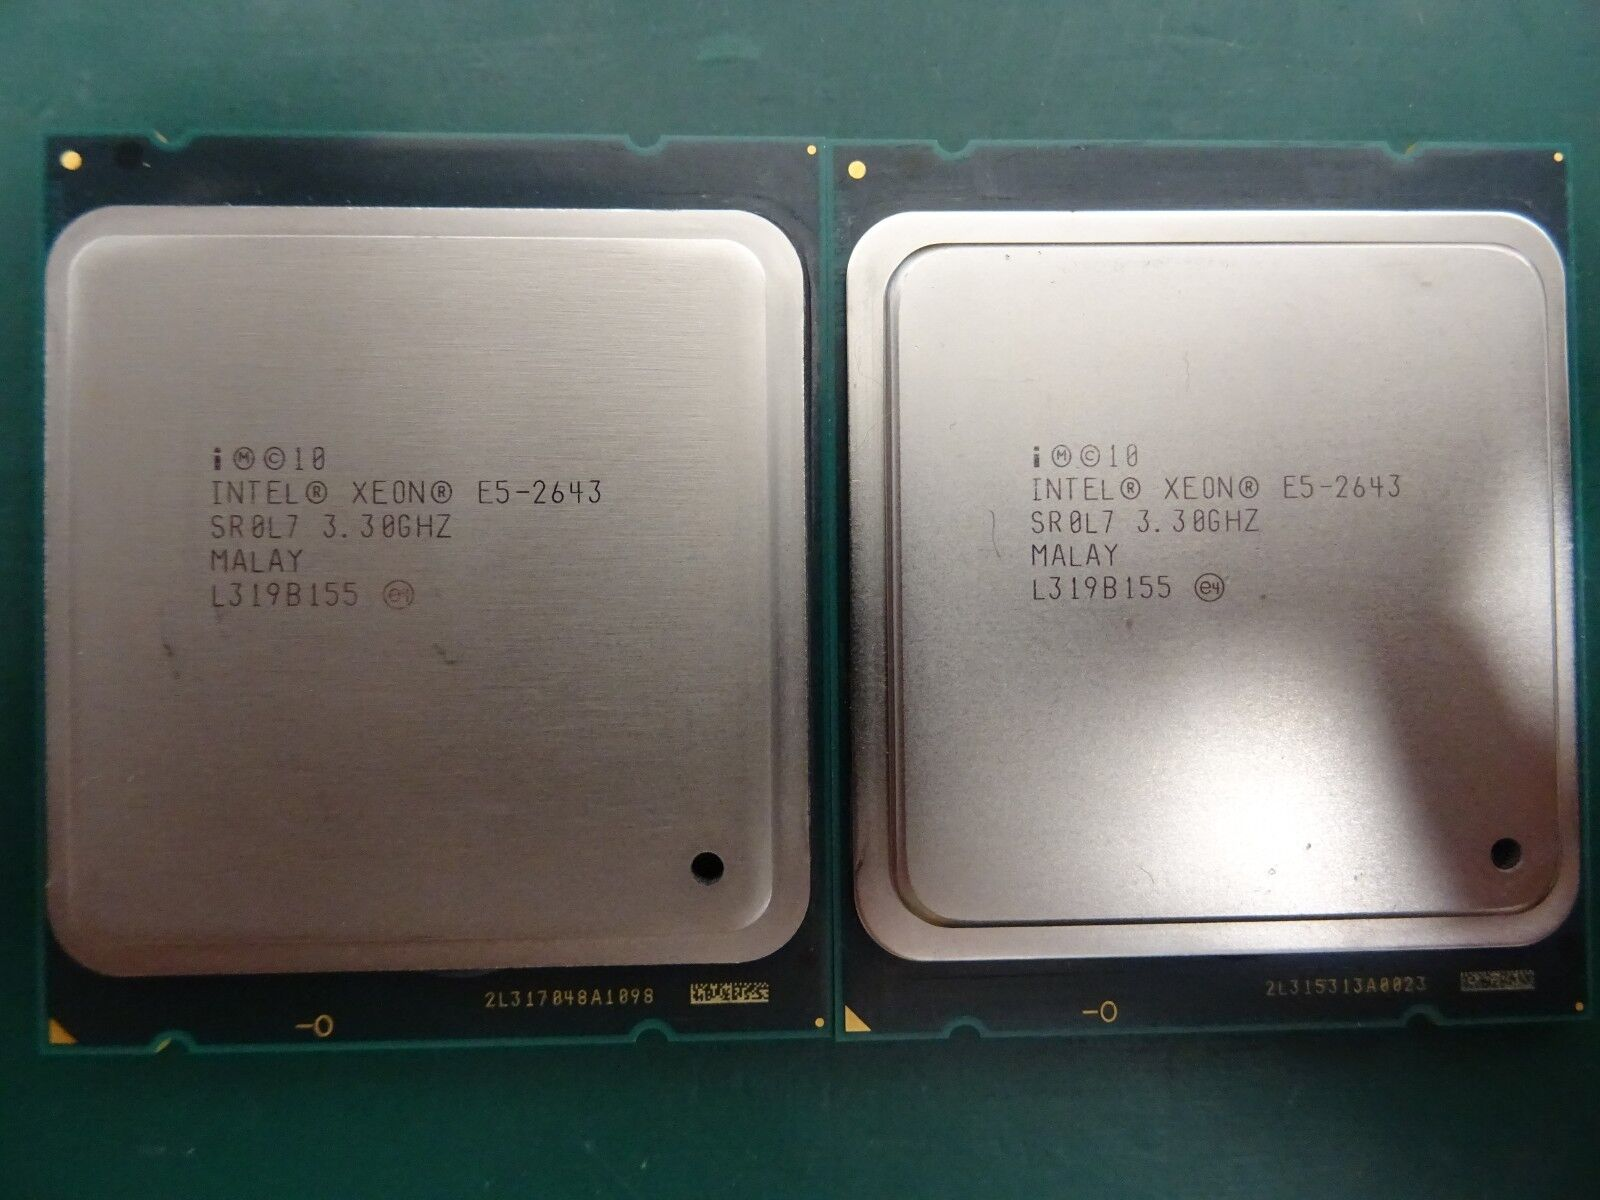 SR0L7 Intel Xeon E5-2643 3.30GHz Quad Core 10MB LGA2011 CPU Processor